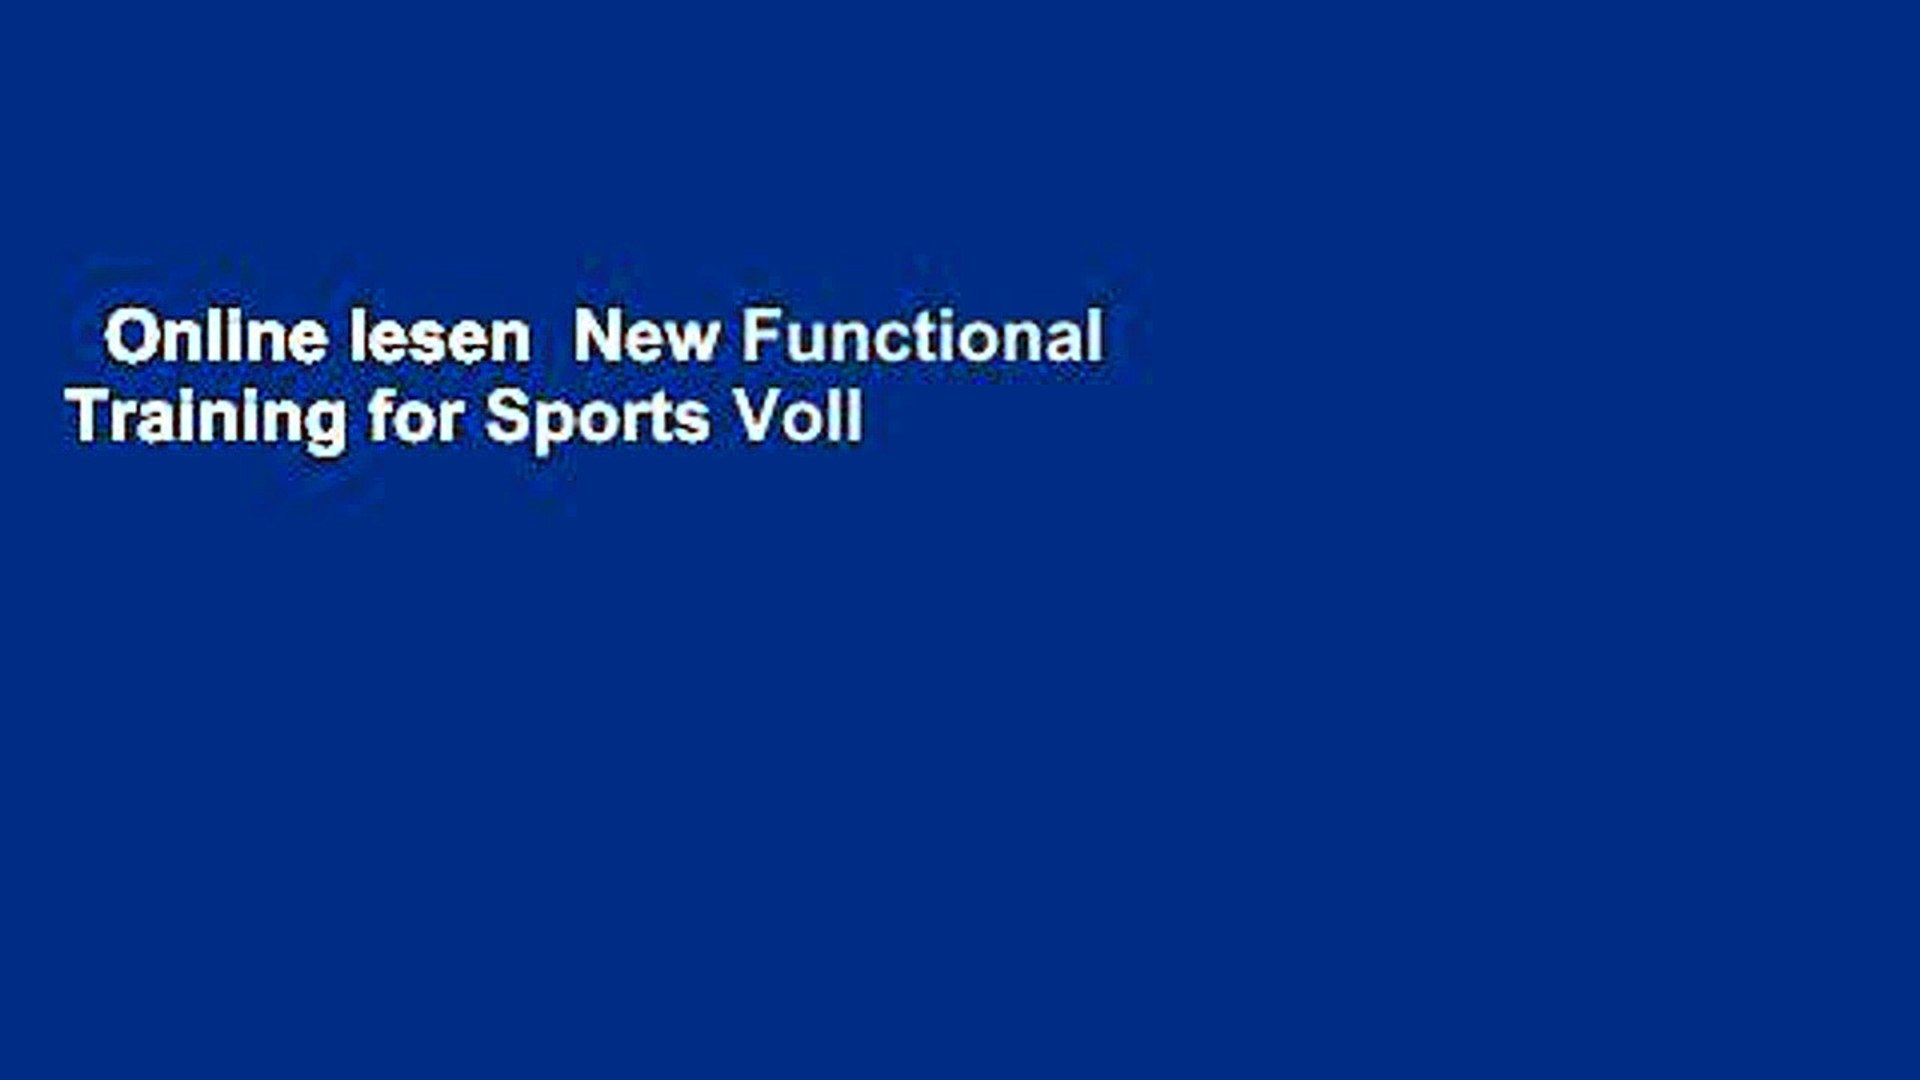 Online lesen New Functional Training for Sports Voll   video ...